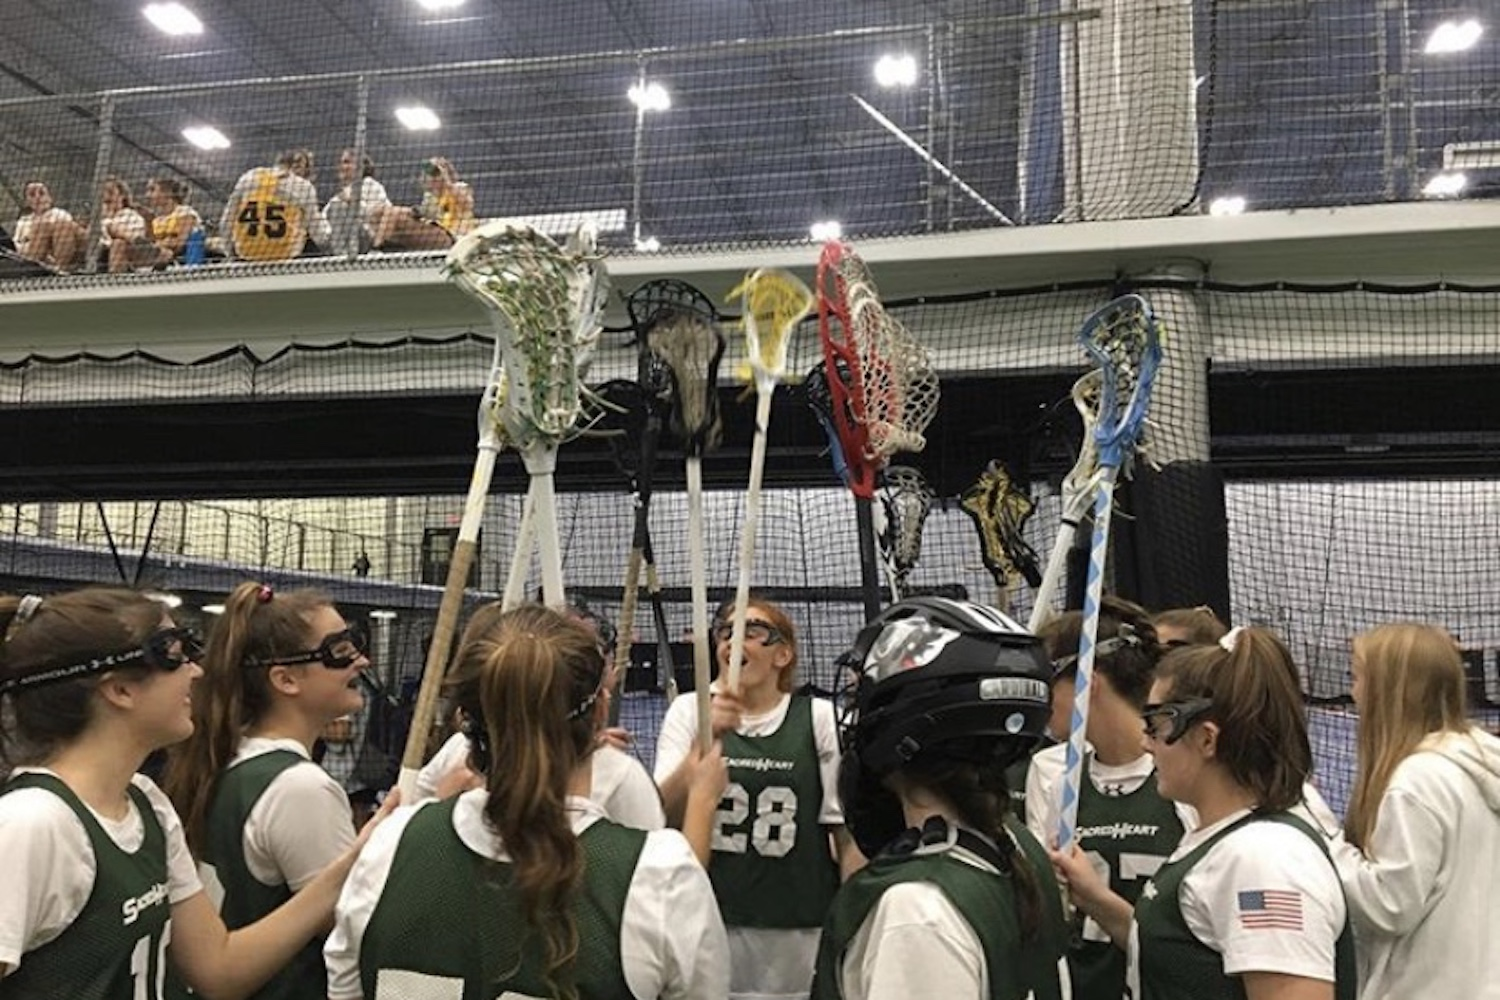 The 2019 varsity lacrosse team at the Inside Lacrosse Indoor National Championship.